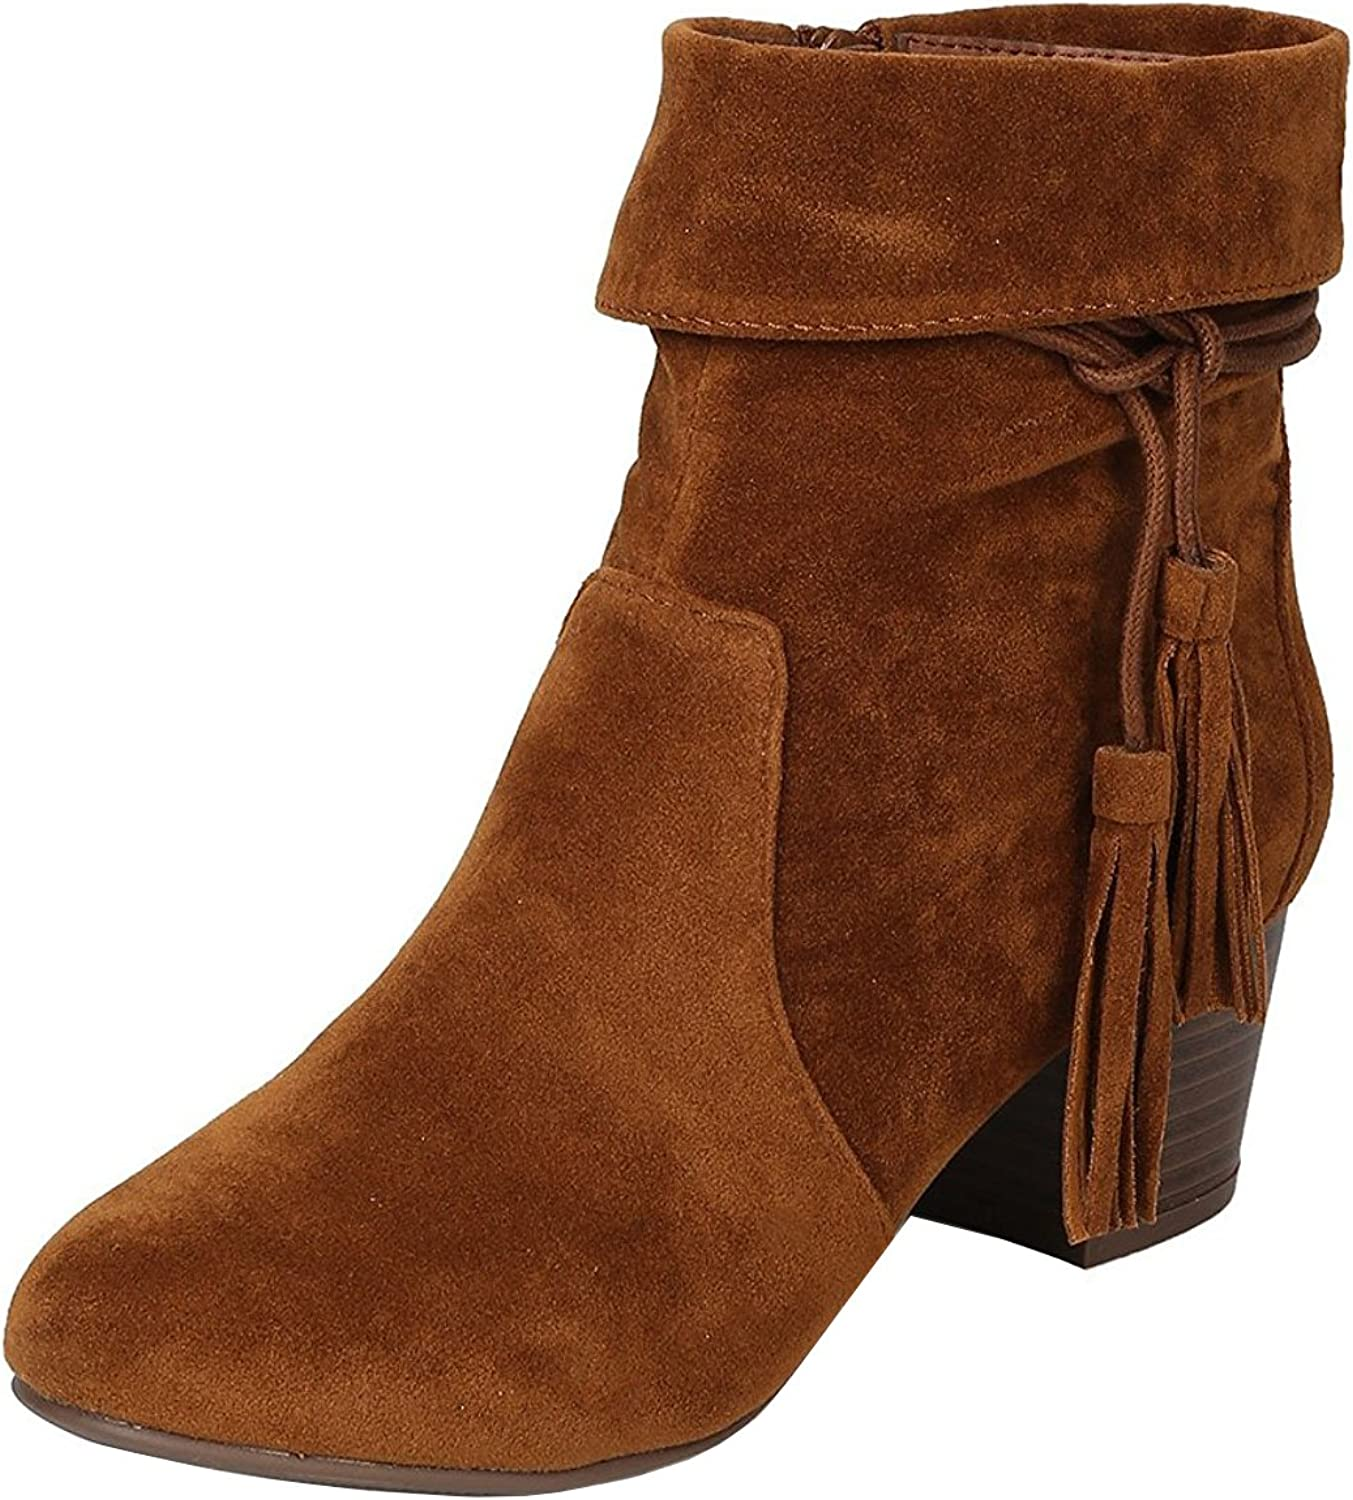 Breckelles Women's Closed Toe Cuff Tassel Chunky Stacked Mid Heel Ankle Bootie